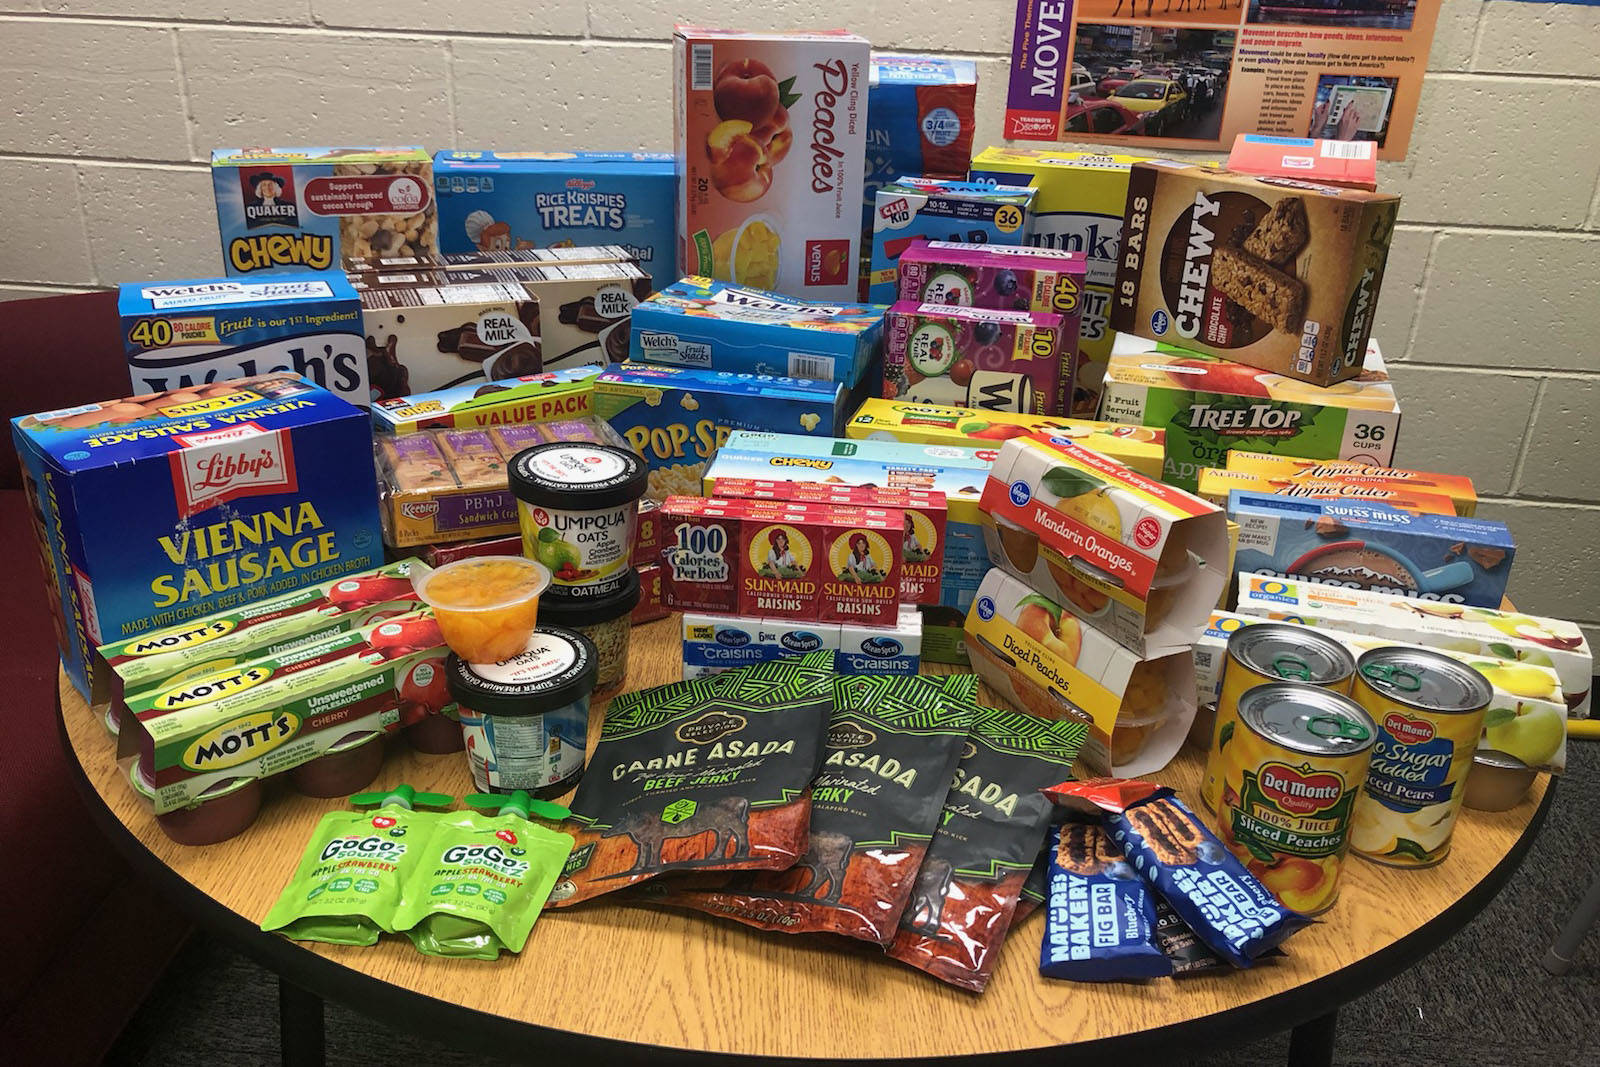 The food collected during Skyview Middle School's snack drive can be seen here at Skyview Middle School in Soldotna, Alaska on Sept. 20, 2019. (Photo courtesy Sheilah-Margaret Pothast)